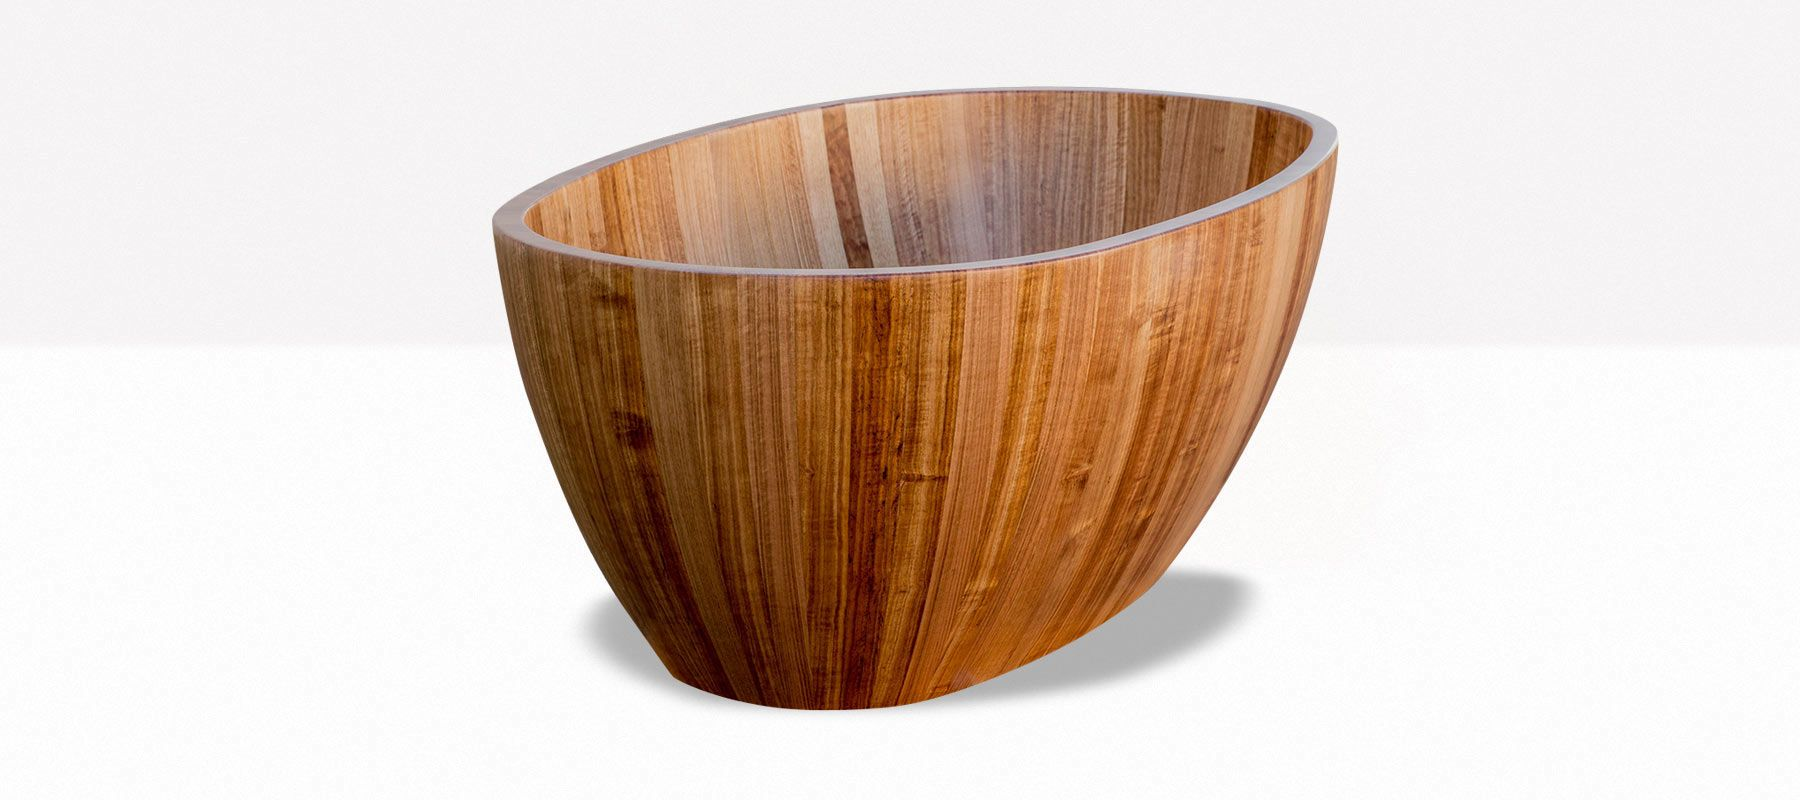 The Barrel wooden bathtub from Wood + Water is made from Tasmanian Oak and still maintains the feel of a traditional soaking tub, even though it's shape is modern.